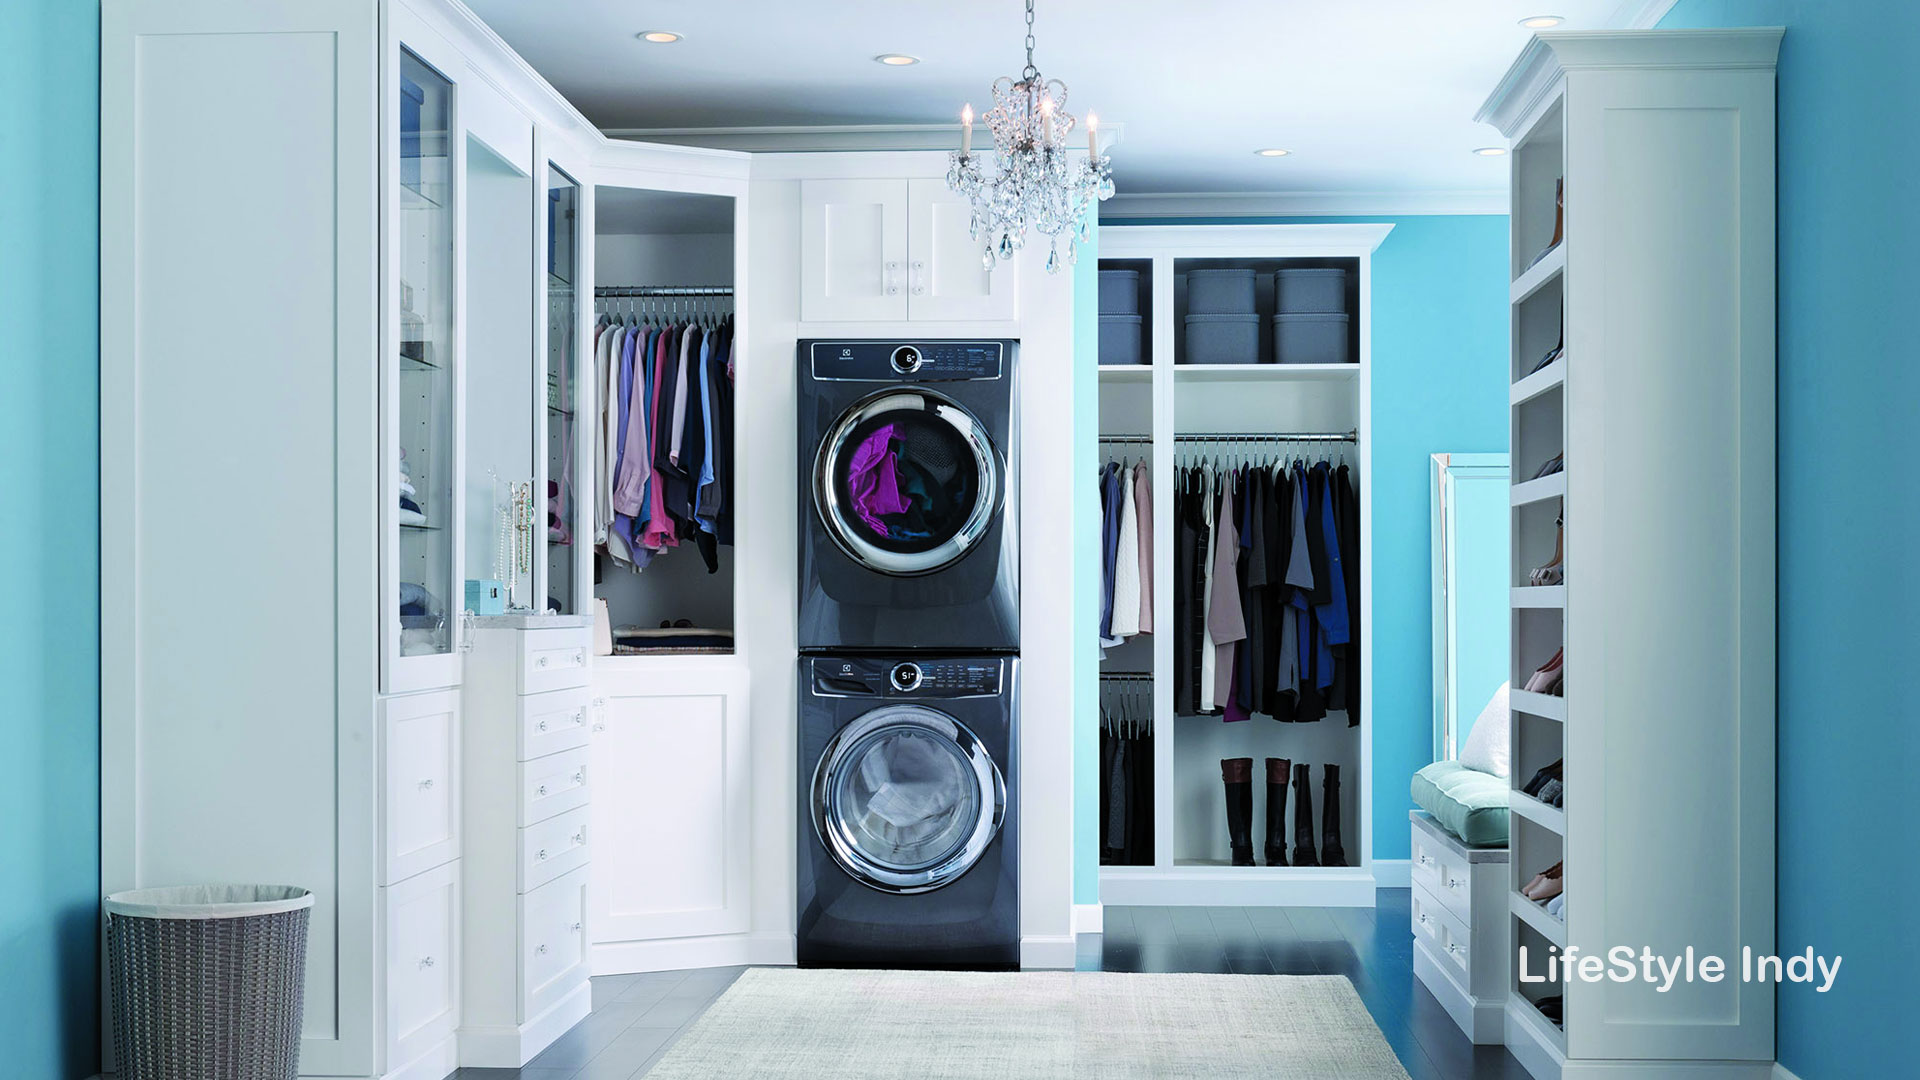 Another laundry room example